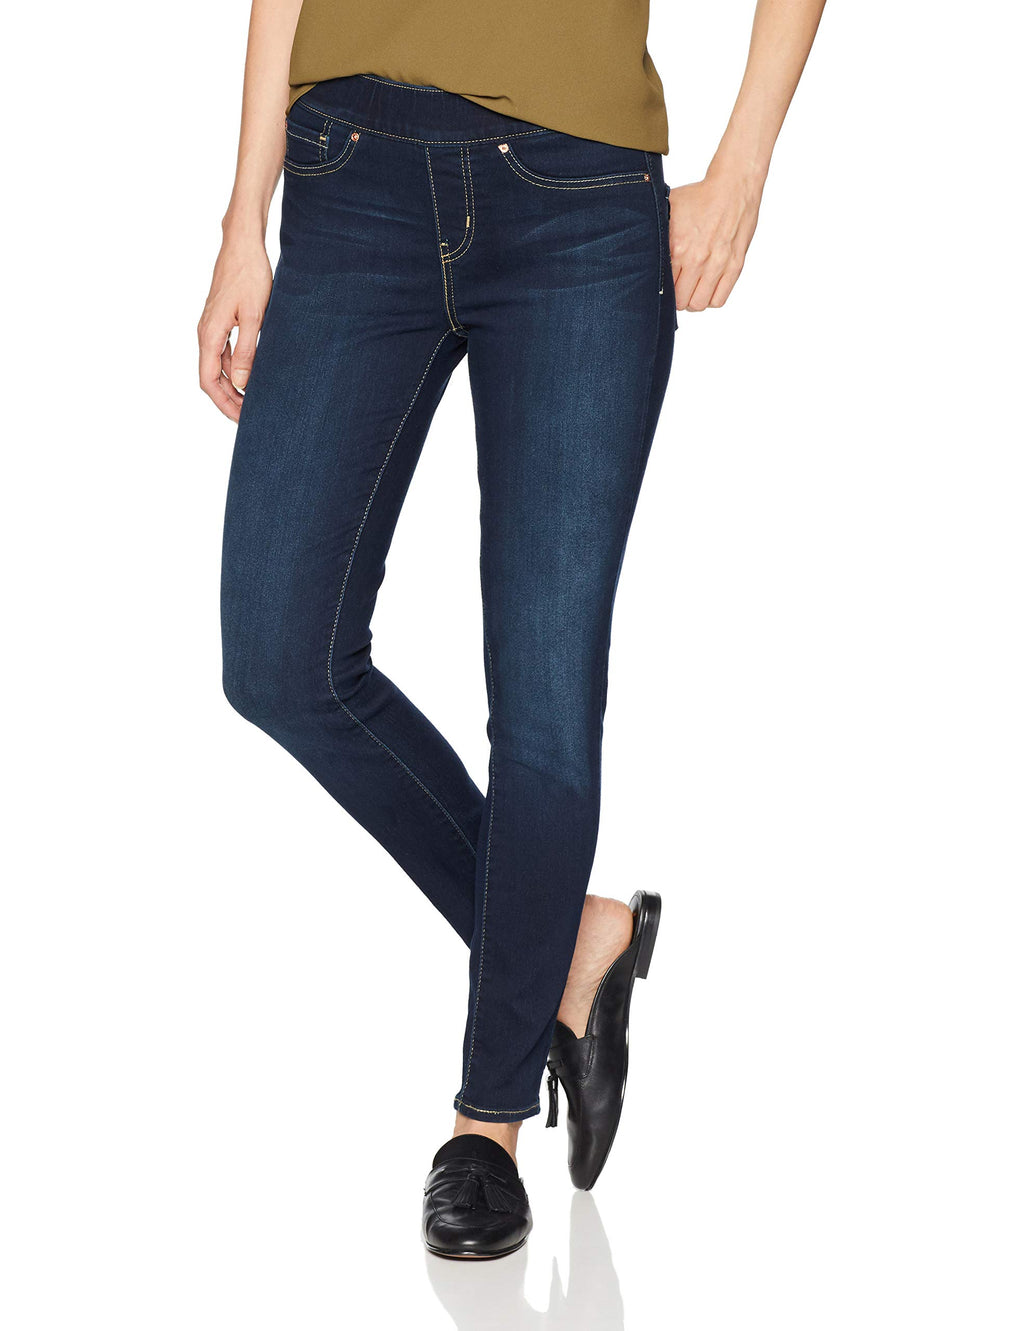 Signature by Levi Strauss & Co. Gold Label Women's Totally Shaping Pull-On Skinny Jeans, Immaculate, 6 Short - Gaby.shop